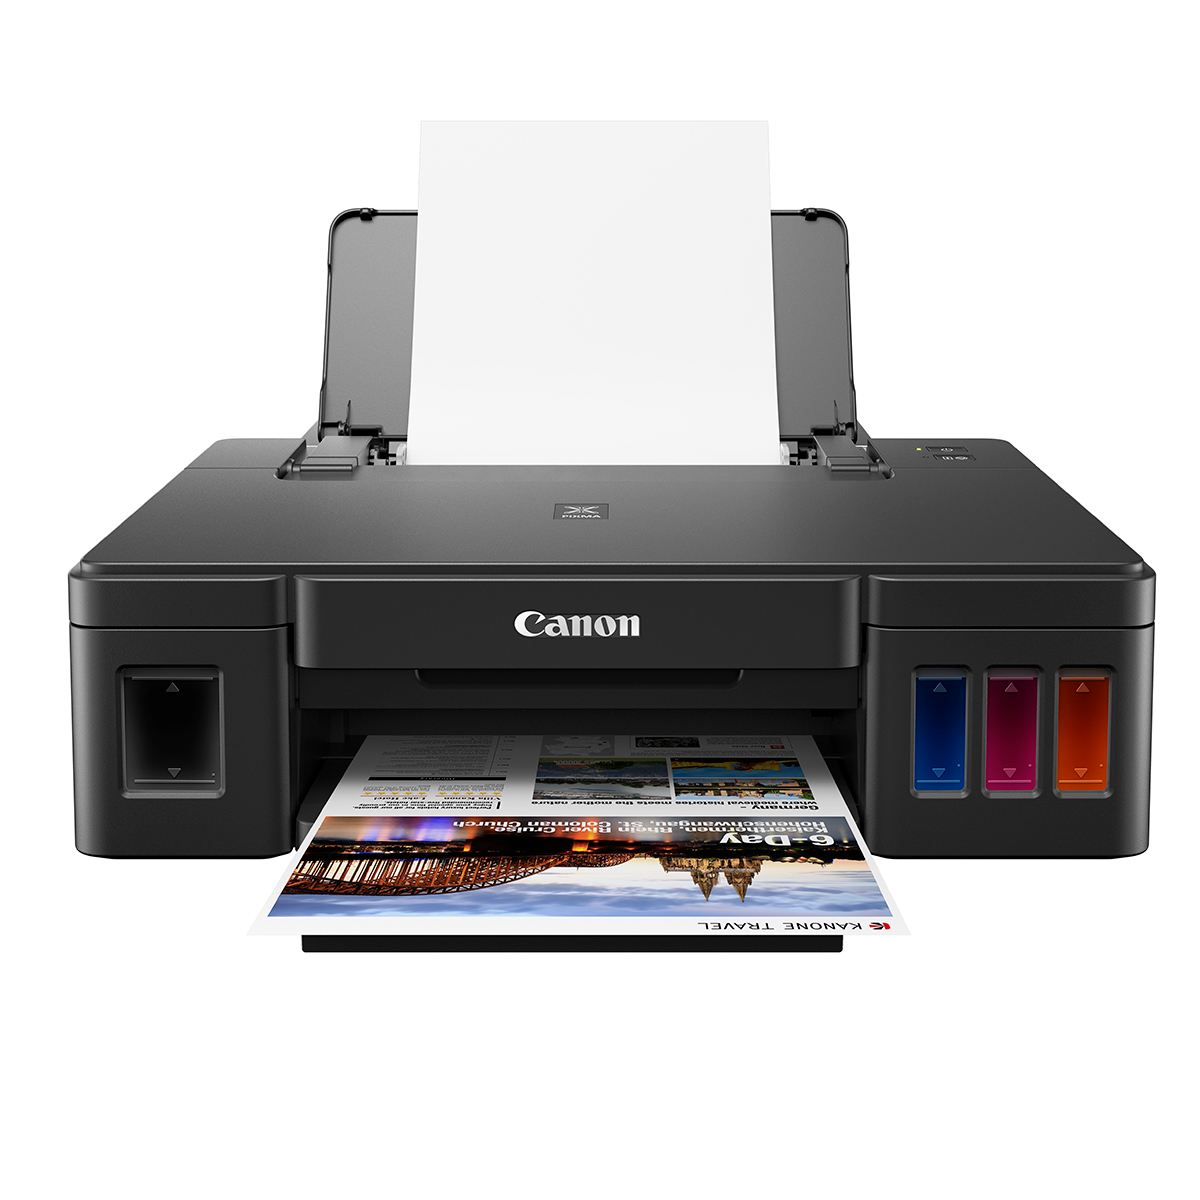 Canon PIXMA G1501 A4 Refillable Ink Tank Printer